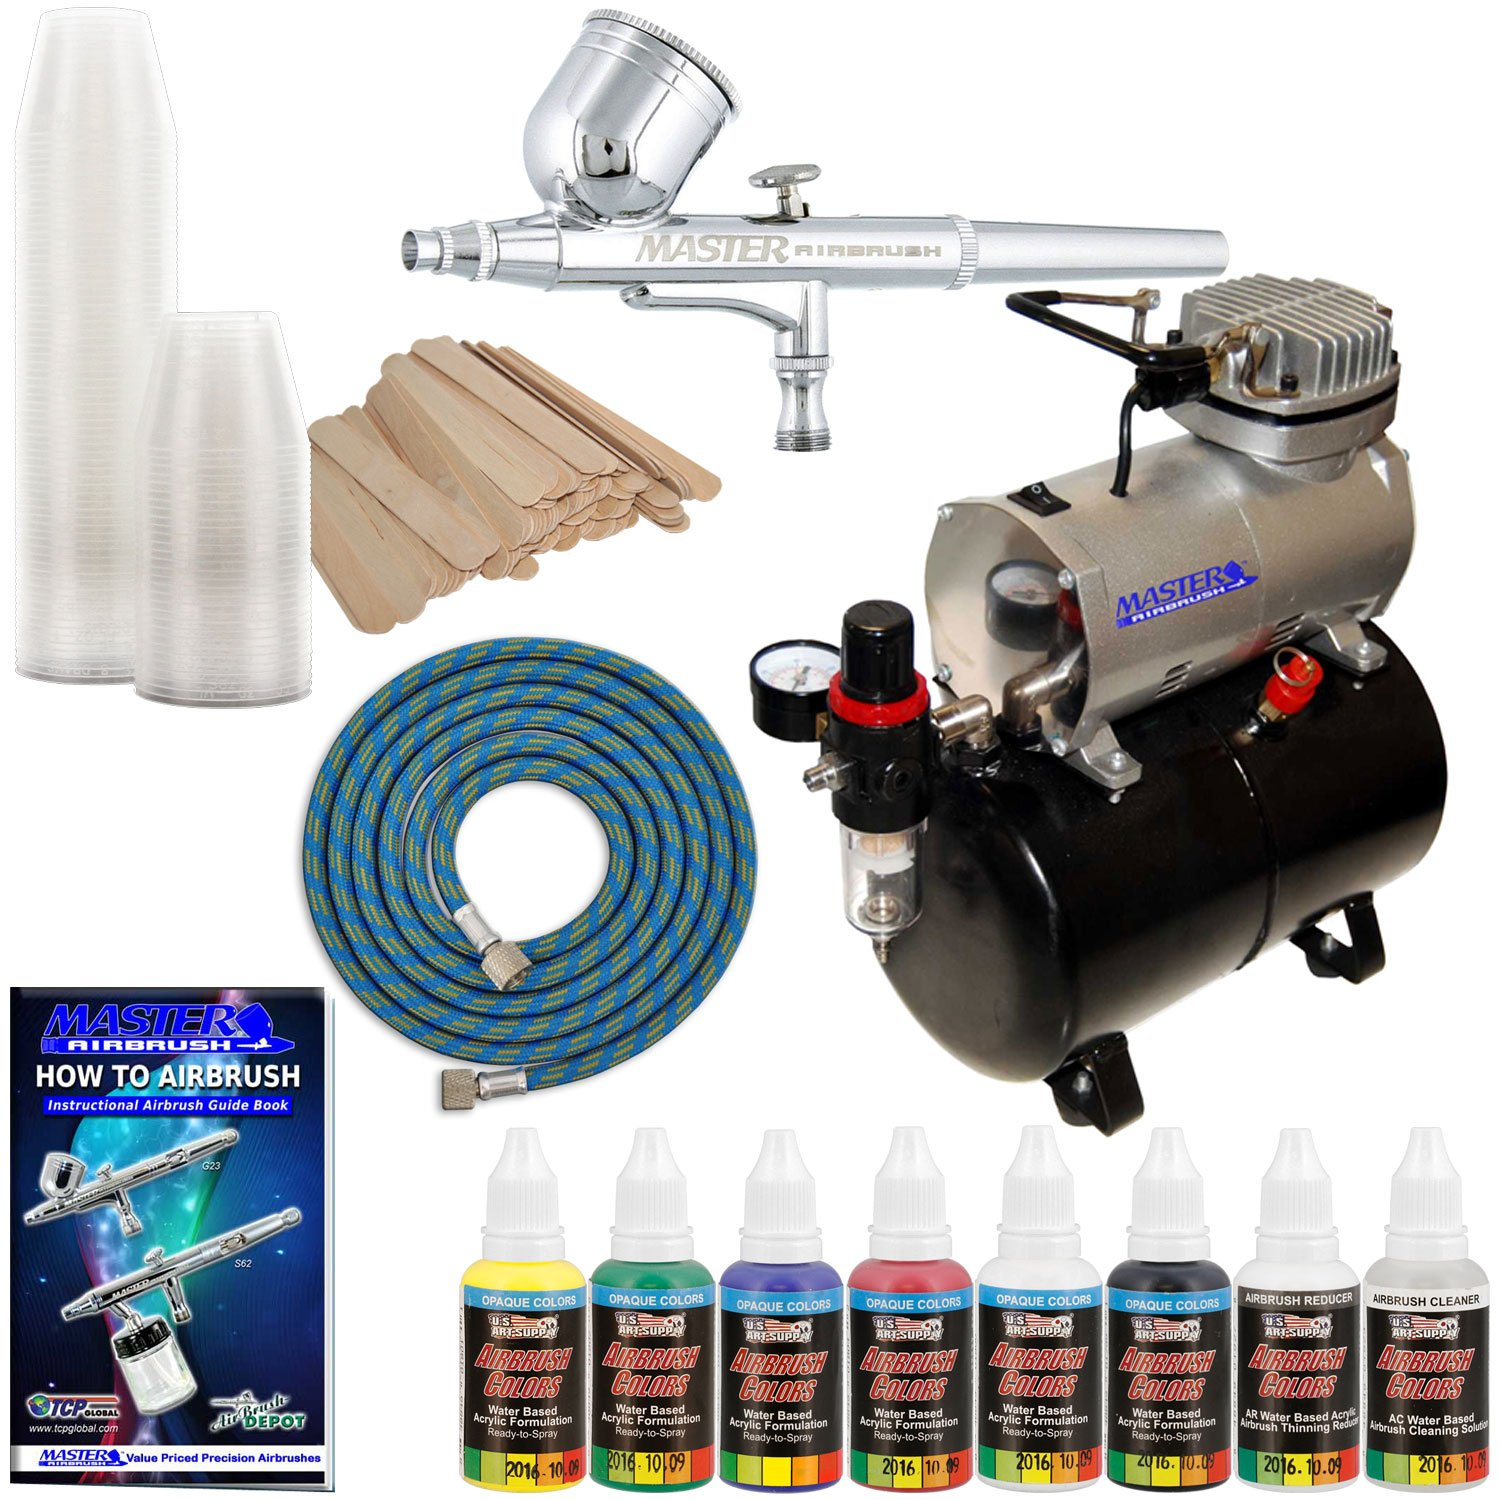 Complete Multi-Purpose Airbrush Kit with G22 Airbrush, Master Compressor TC-20T, Air Hose & 6 Primary US Art Supply Paint Colors, Airbrush Reducer & Cleaner Master Airbrush